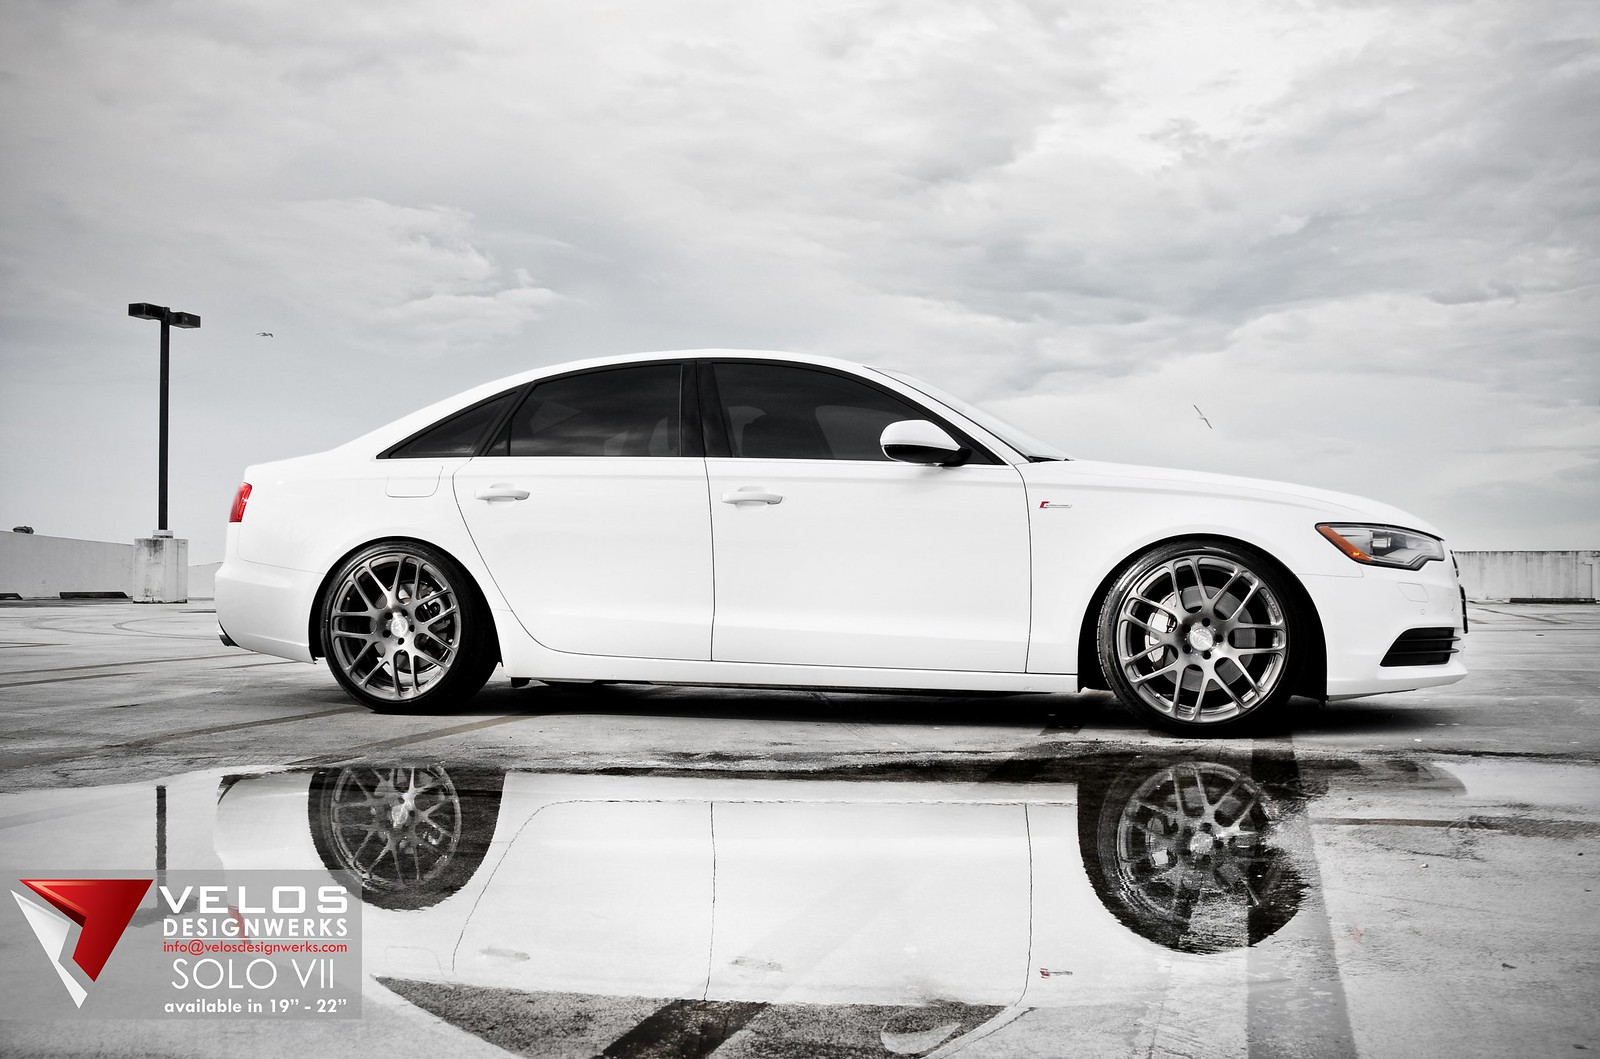 Velos Designwerks Solo Forged Wheels | Summer Sale | Audi A6 on honda accord tinted, audi s5 tinted, audi a3 tinted, nissan altima tinted, jeep grand cherokee tinted, audi a4 avant tinted,